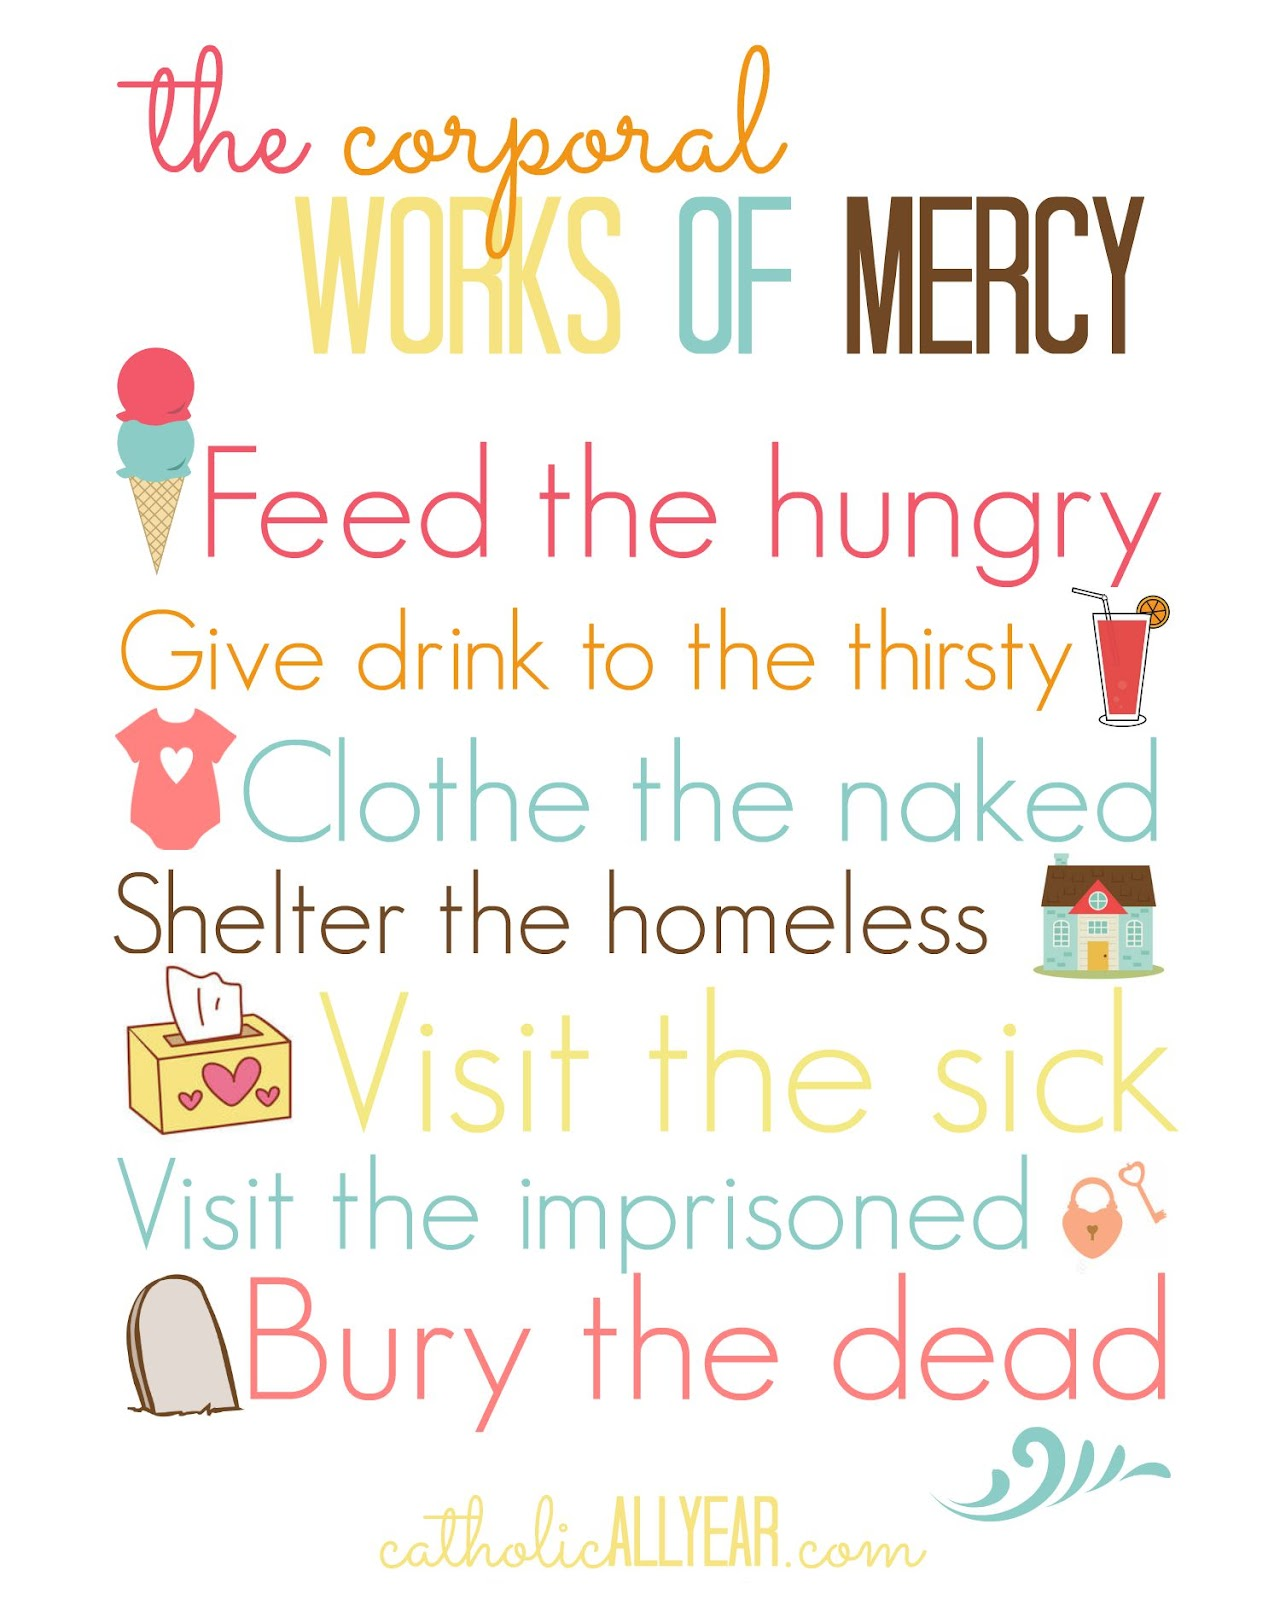 The year of mercy family challenge catholic all year bloglovin the corporal works of mercy are pretty straightforward but most take some planning and effort they put our focus on taking care of people physically fandeluxe Gallery